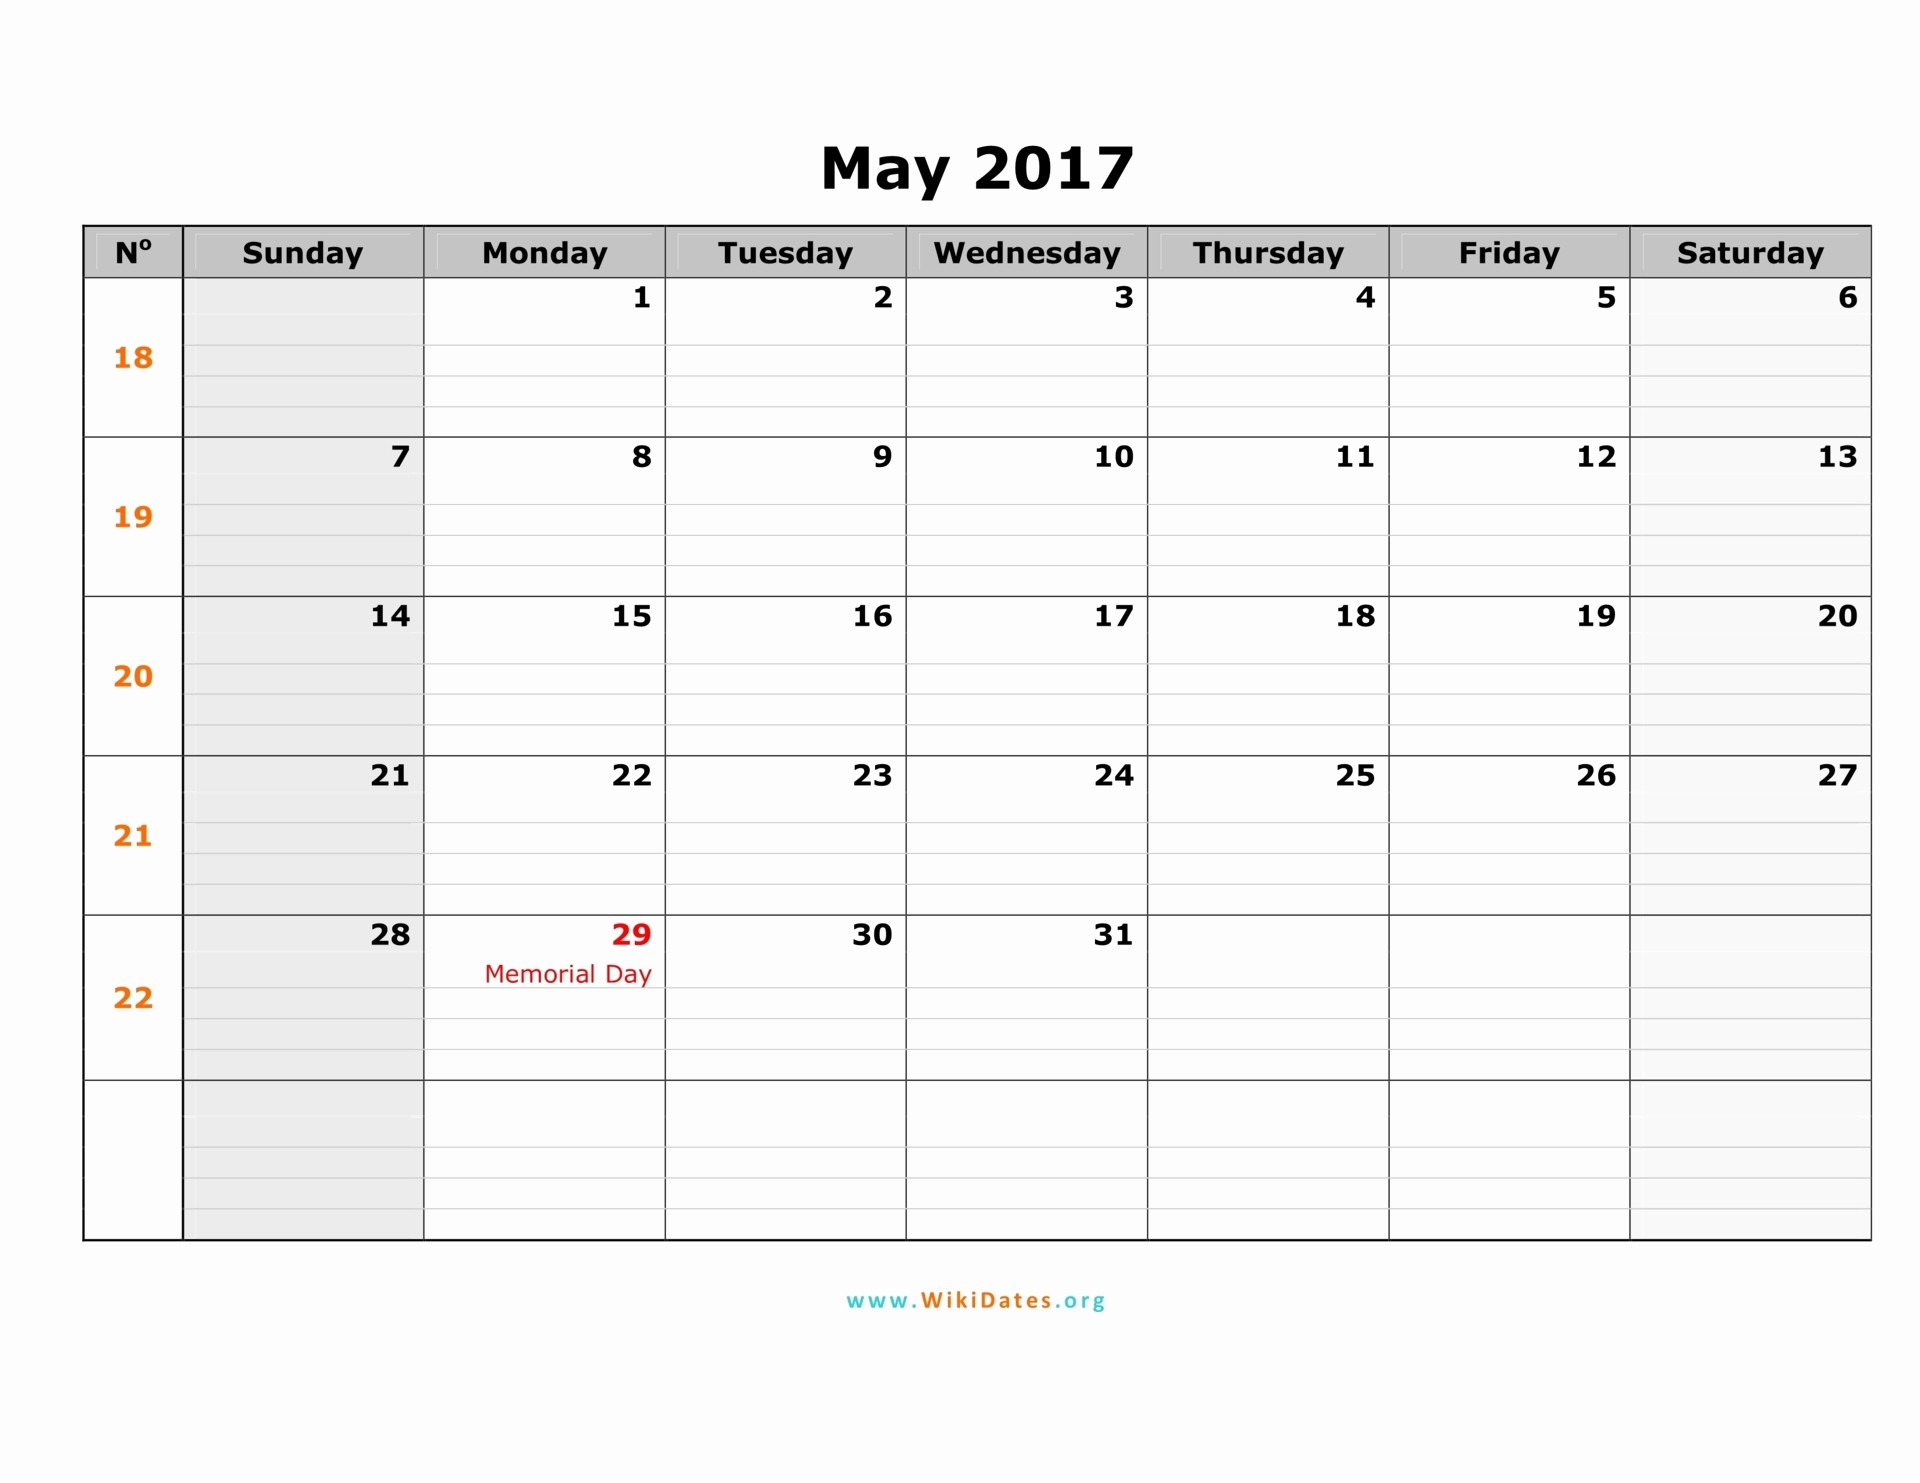 Calendar 2017 Monday to Sunday Inspirational May 2017 Calendar